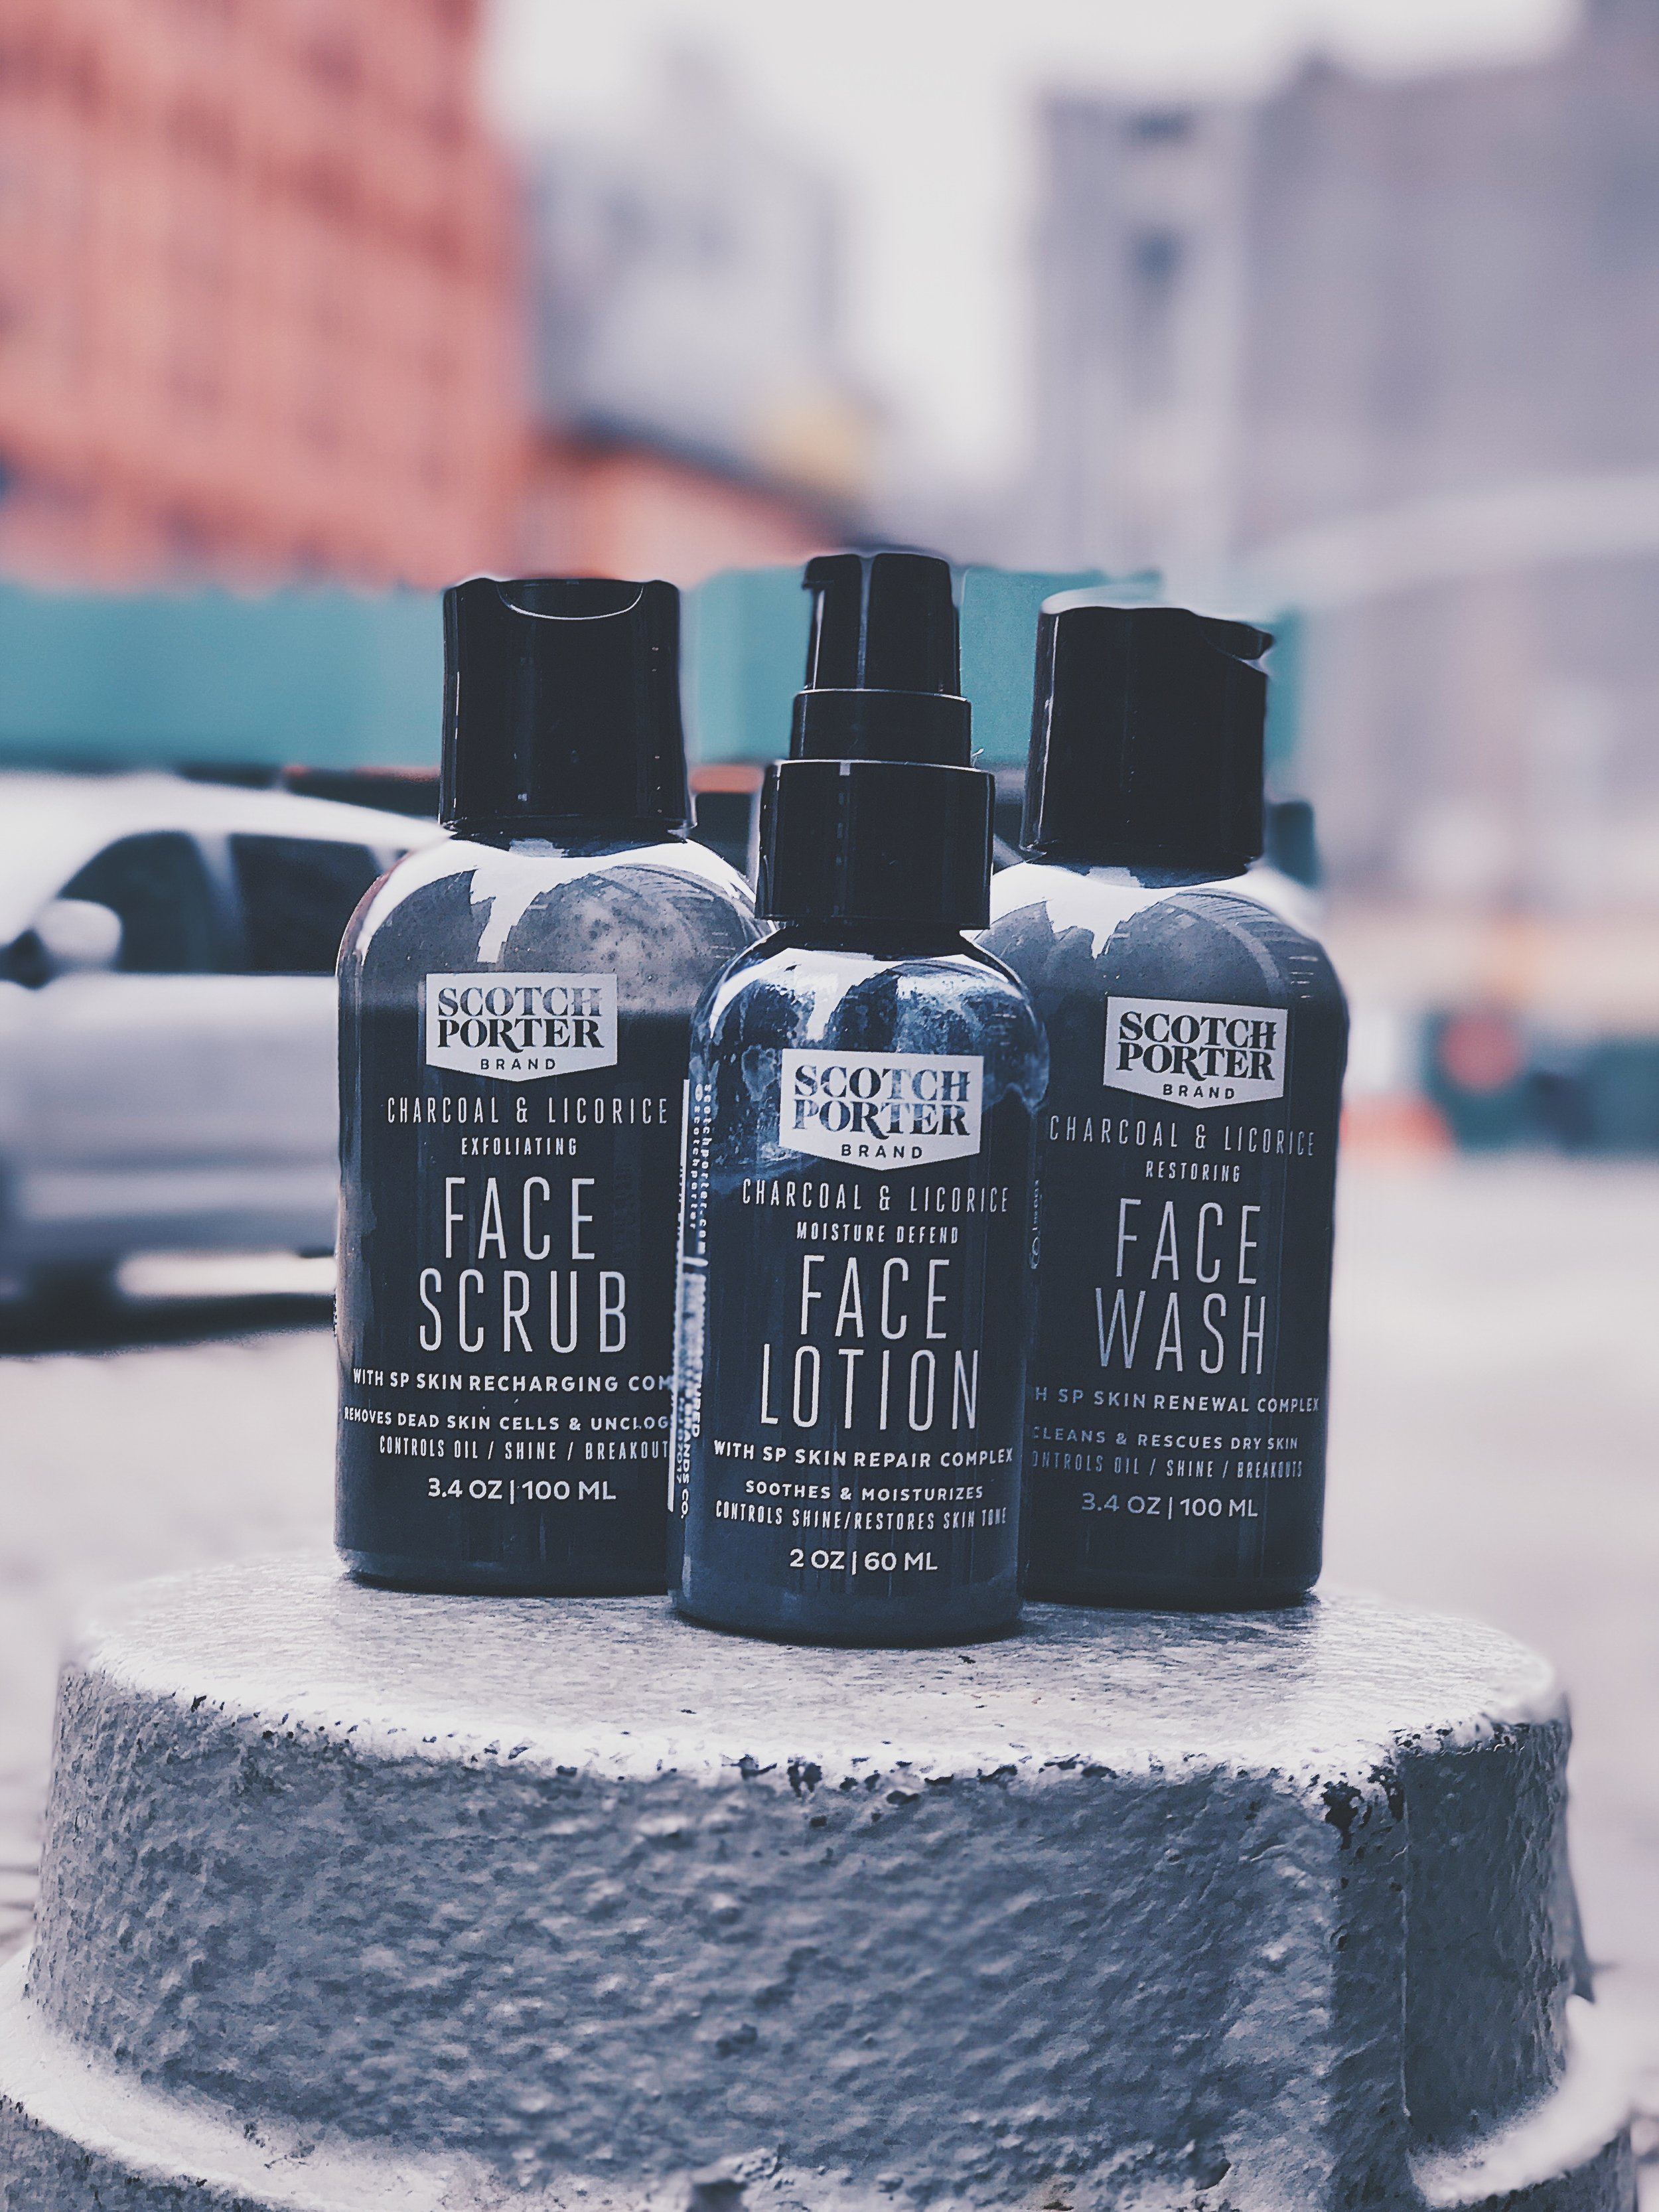 Scotch Porter Skincare Line. A MUSTHAVE.